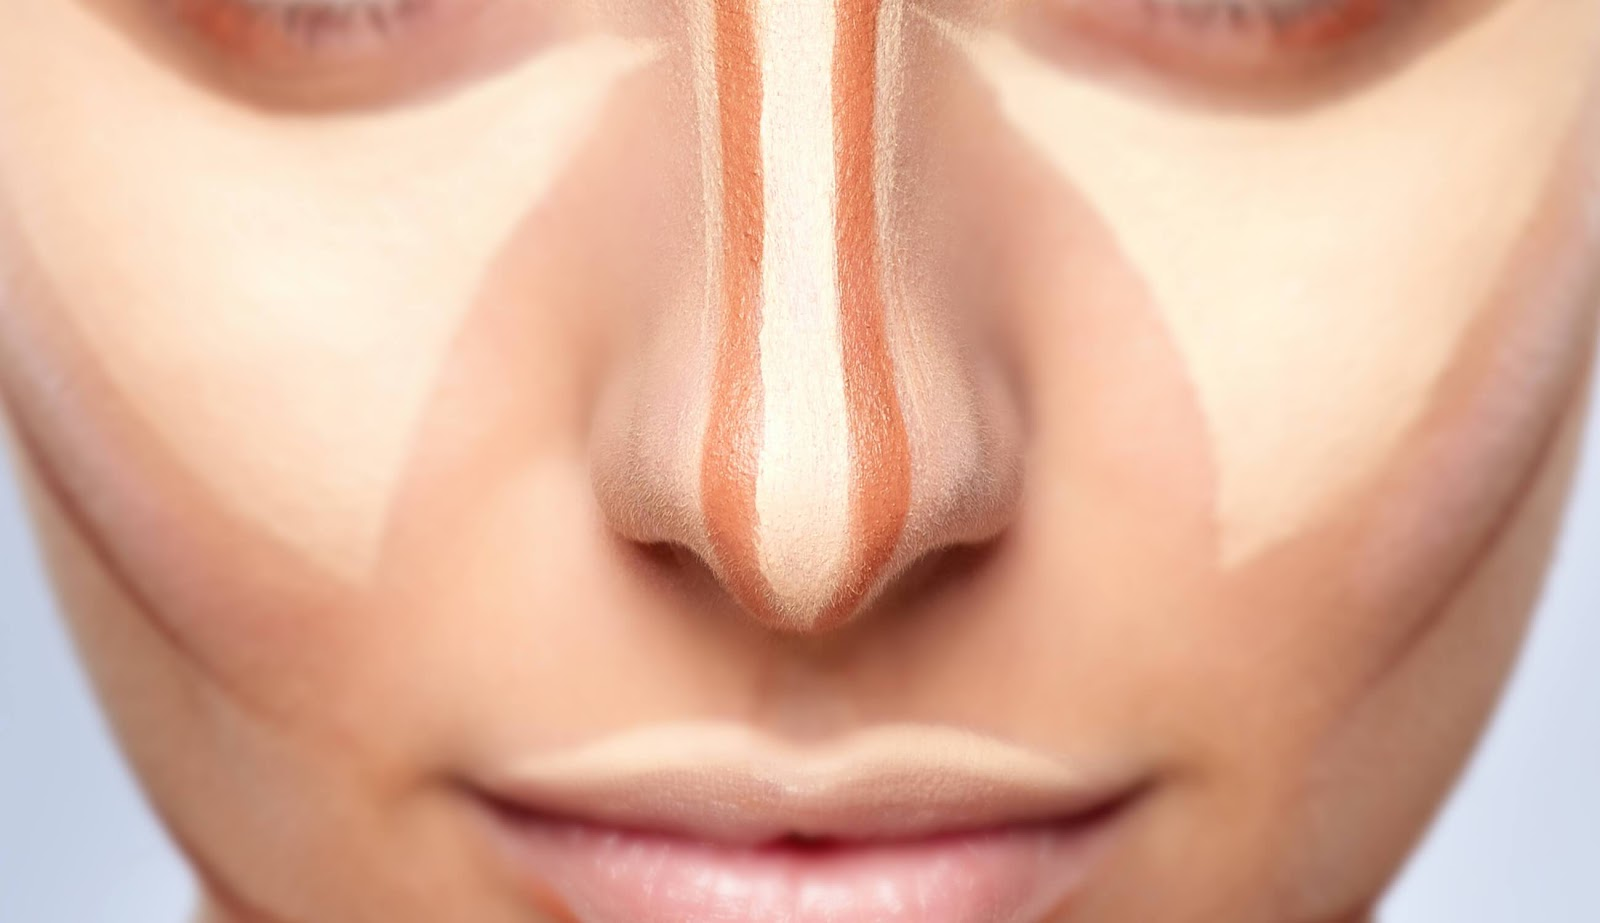 Nose exercise to reshape nose